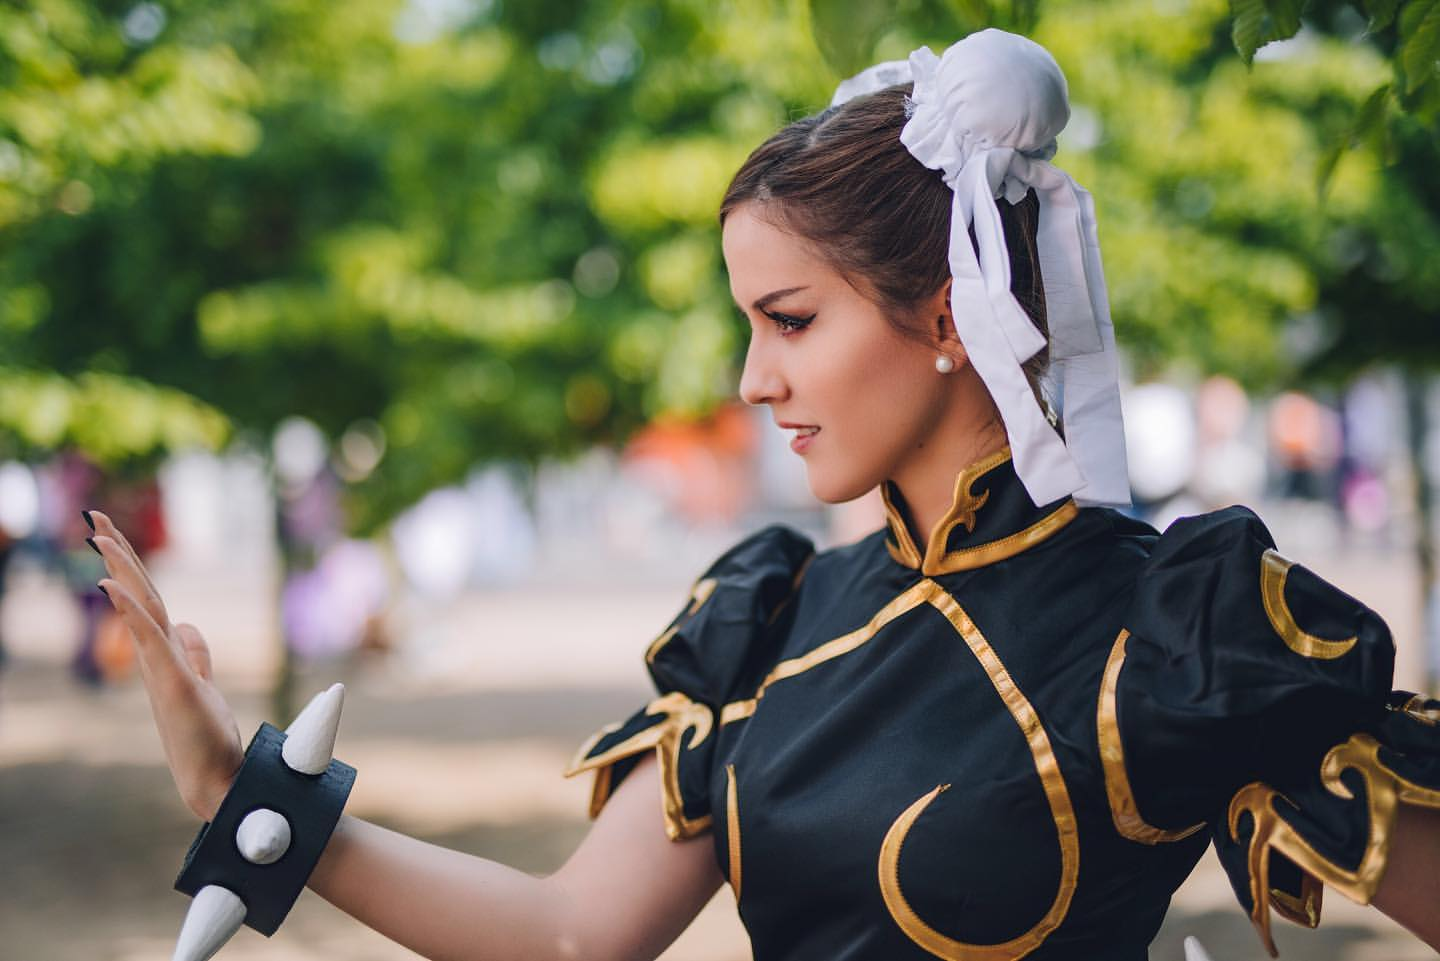 This Chun-Li cosplay by Xen is so on point you'll be trying to duck spin kicks while you look.